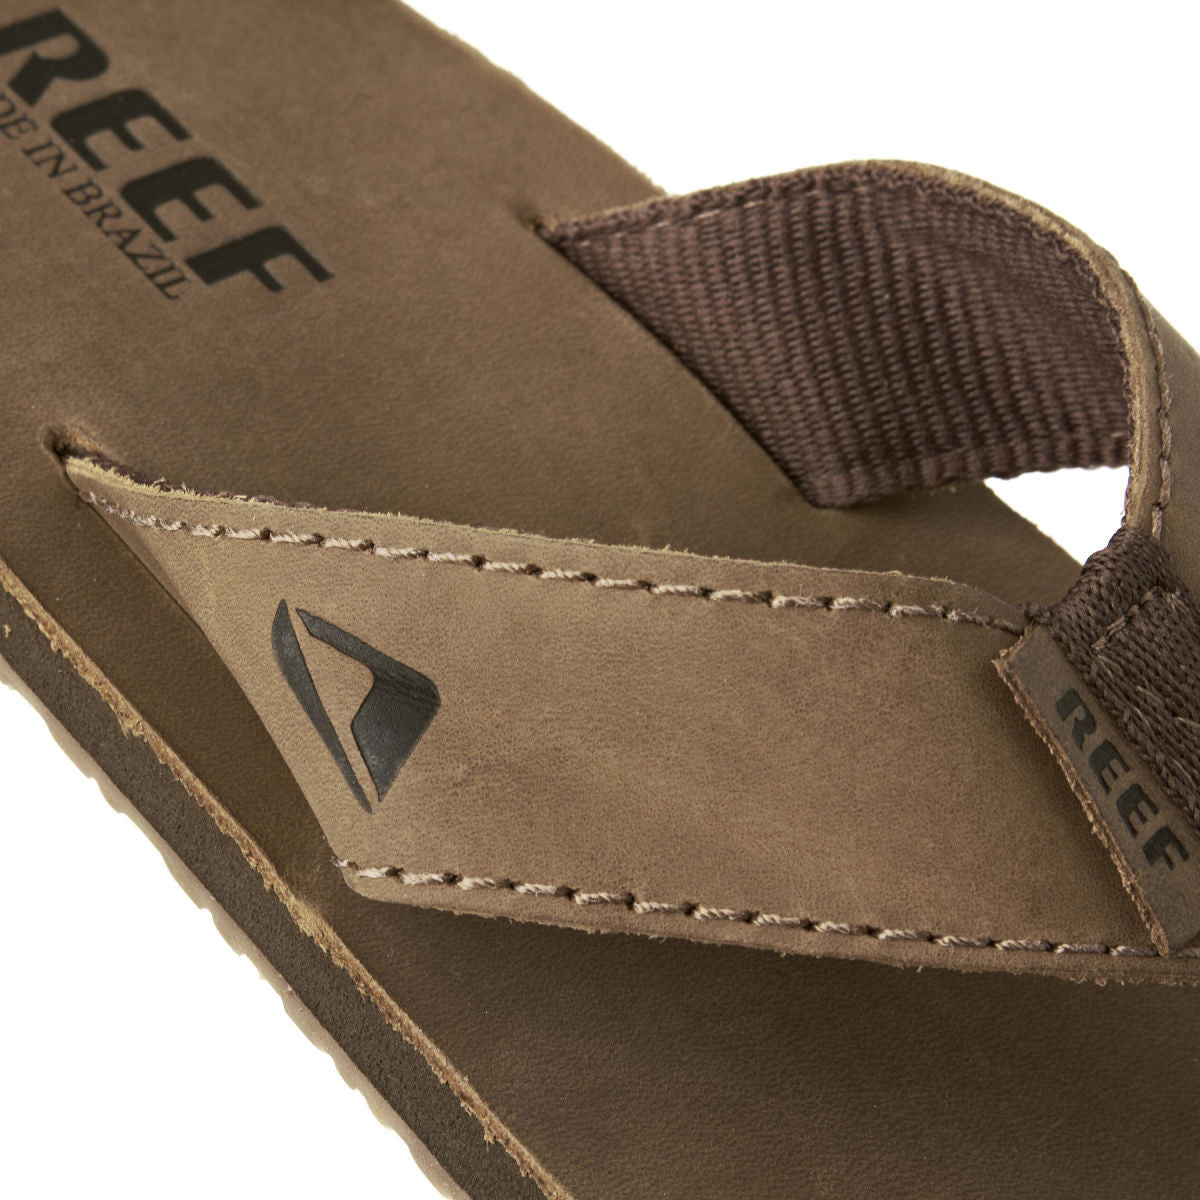 Reef Leather Smoothy Mens Sandals Brown,Sandals,product_vendor] Flow Surf Skate Porthcawl Wales UK